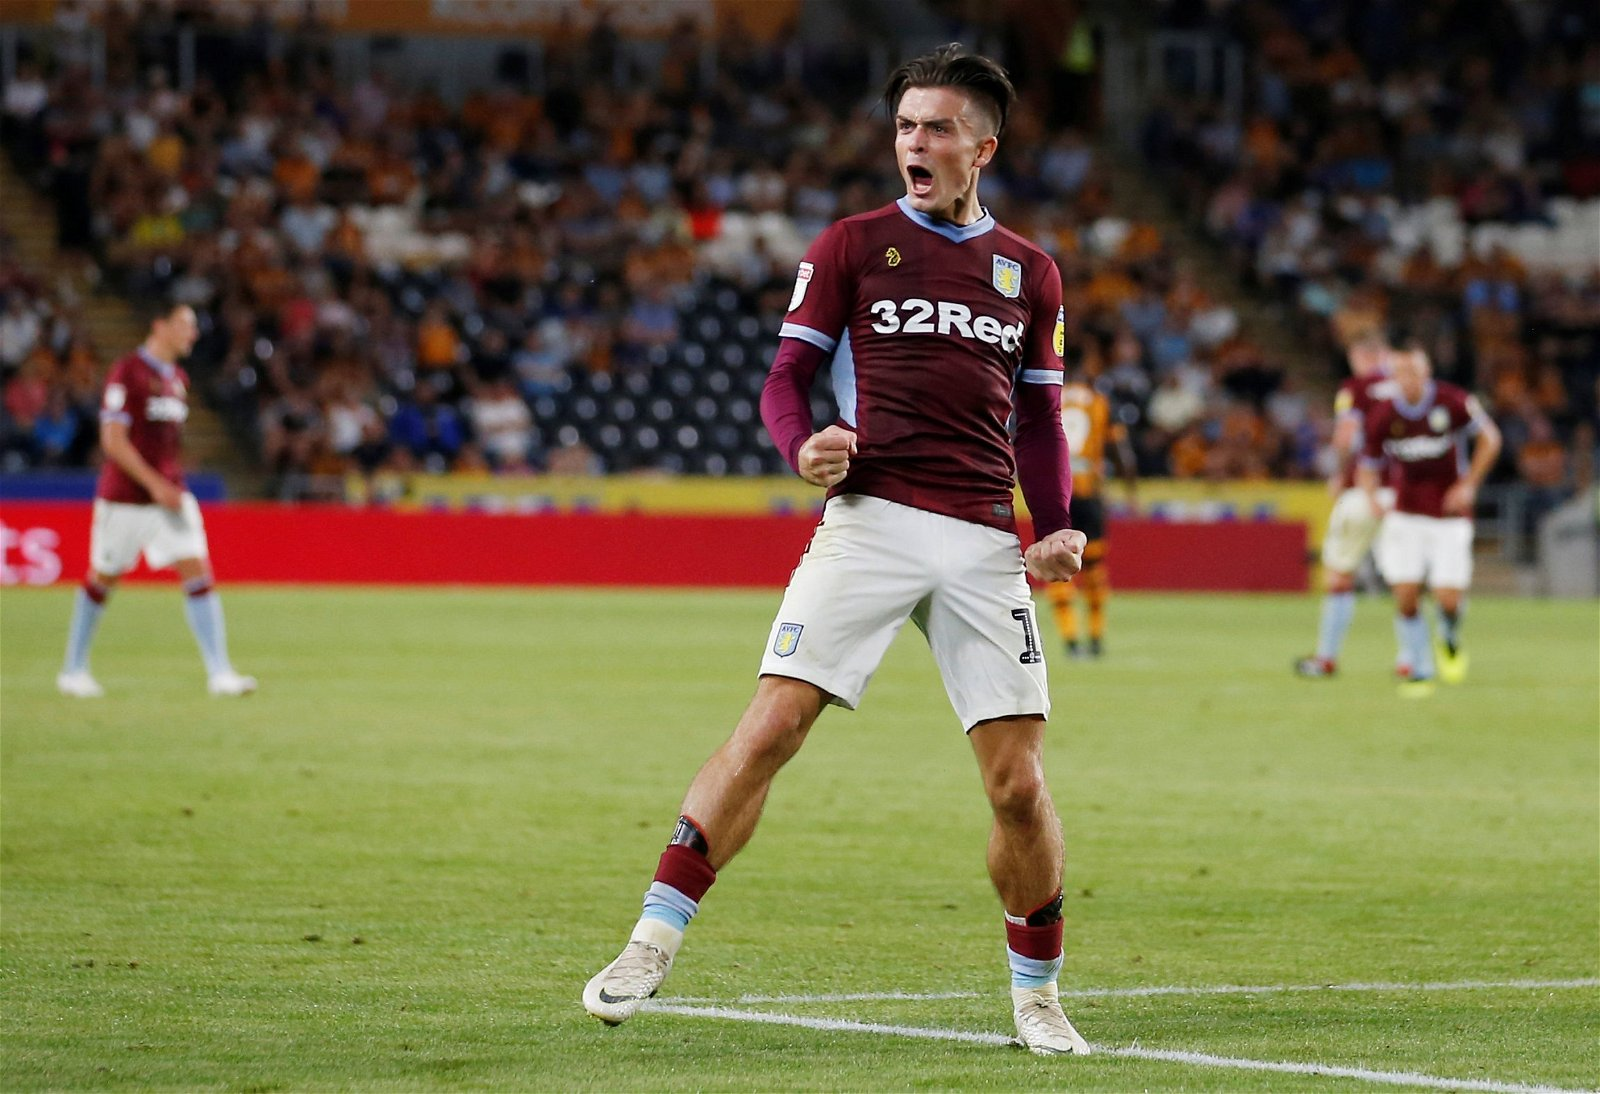 Grealish should be thanking the Aston Villa board for blocking his sale this summer